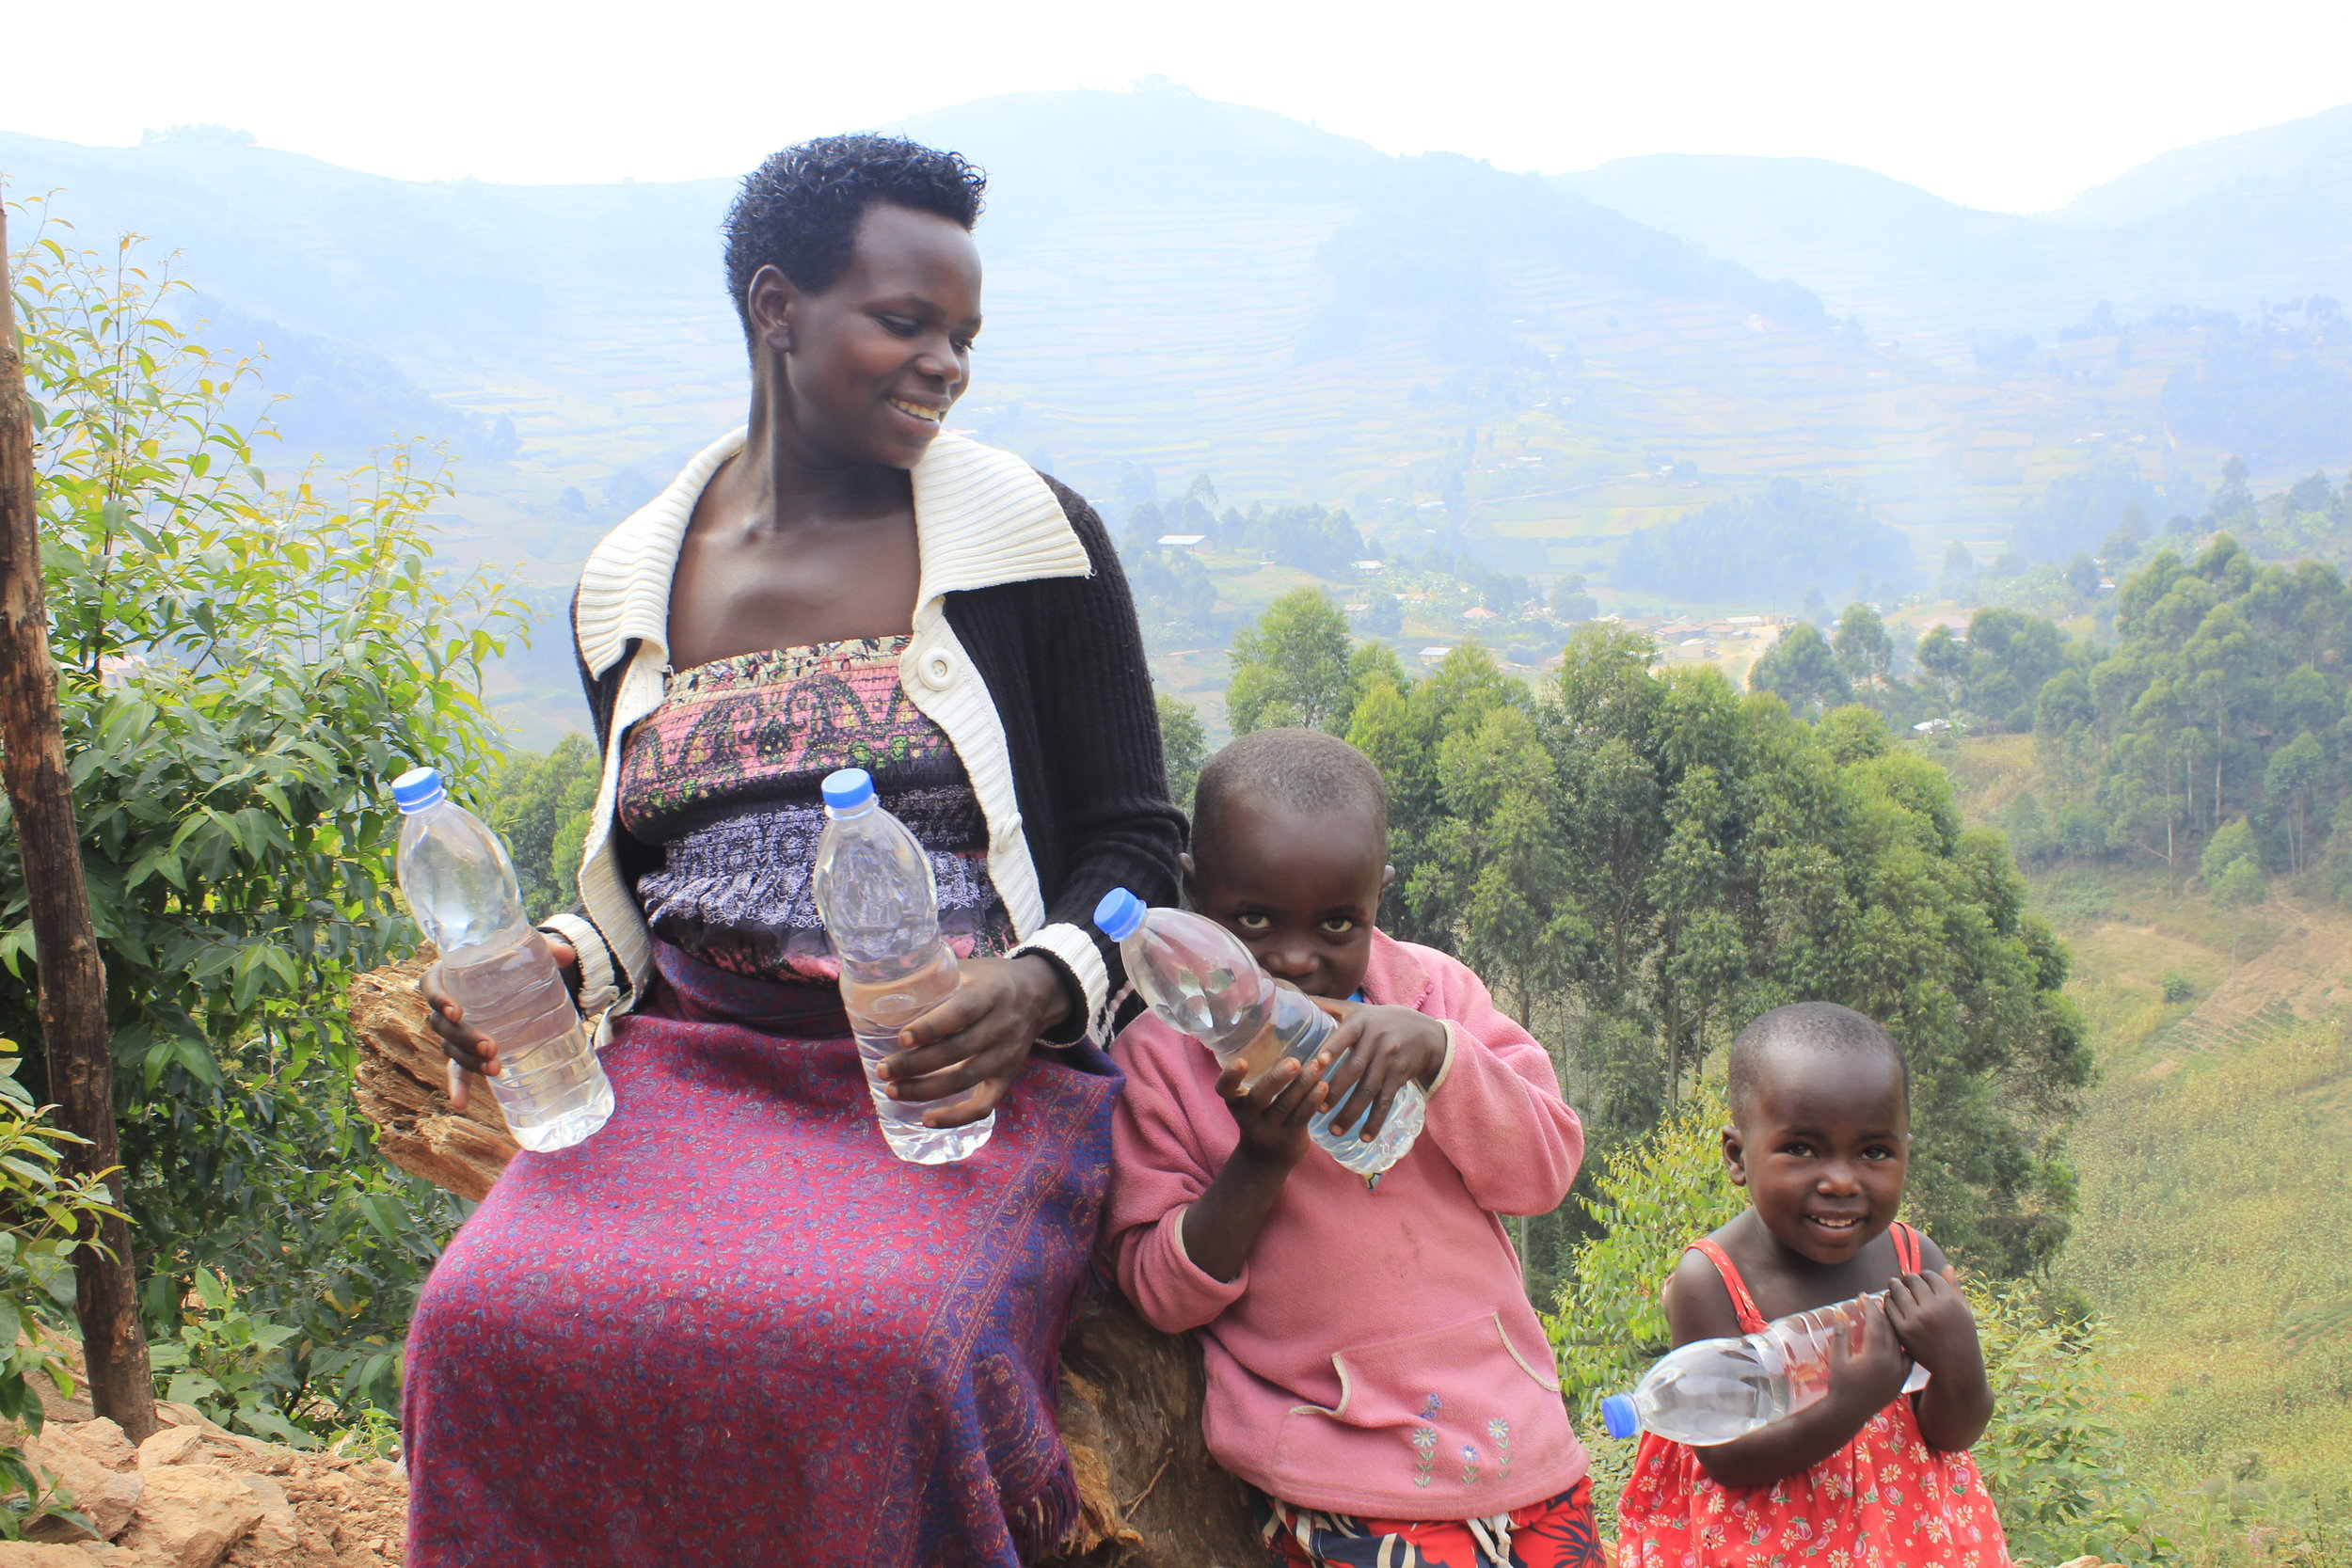 Mom and her two little ones drink clean water